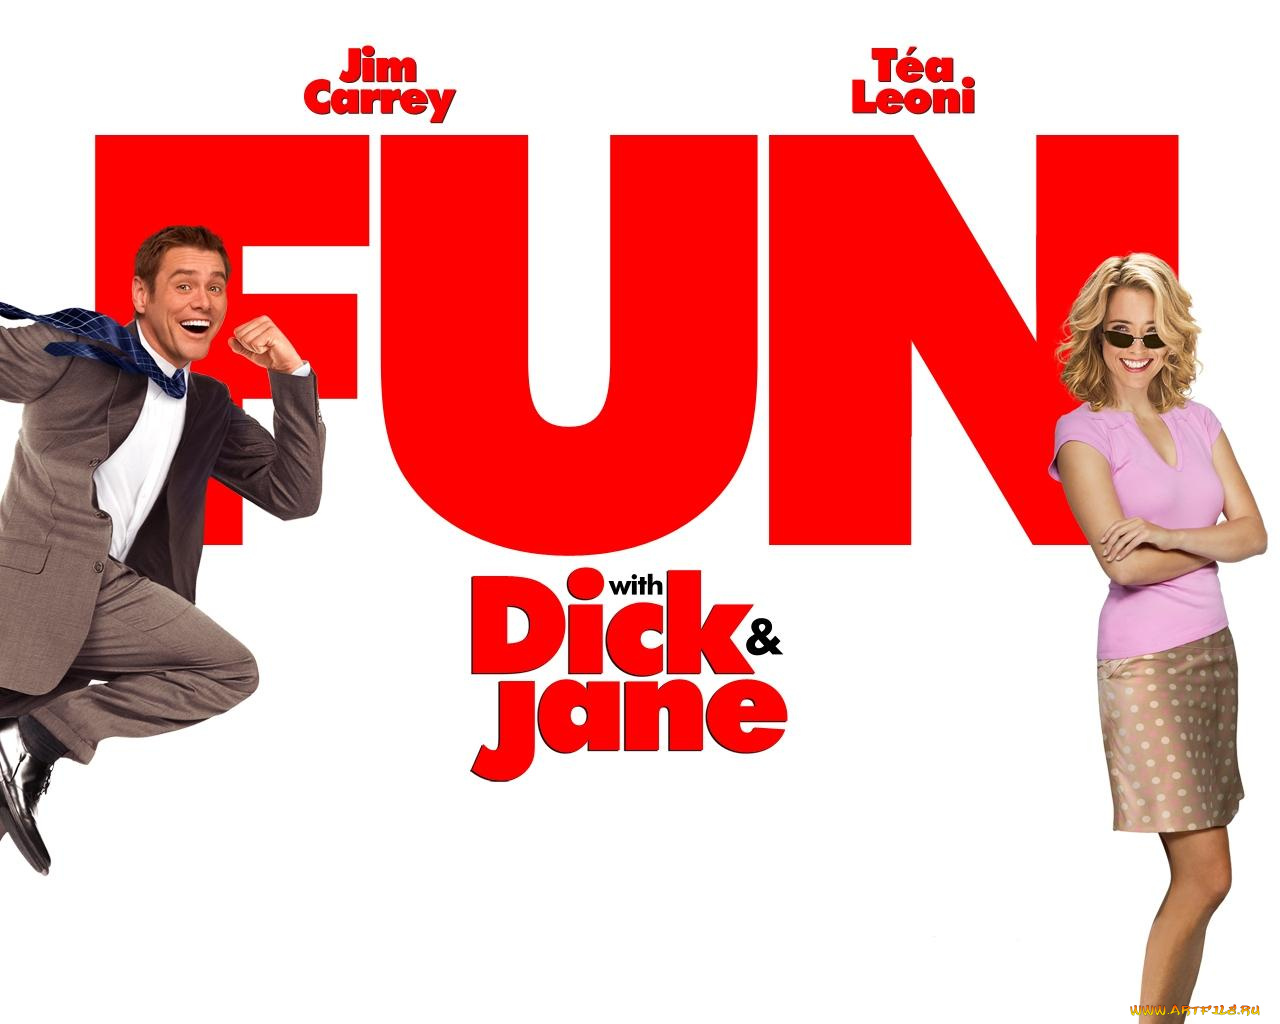 fun with dick and jane Fun with dick and jane is 1977 satirical comedy film directed by ted kotcheff, starring george segal and jane fonda as the title characters dick and jane harper are married yuppies, an aerospace engineer and a dedicated homemaker.